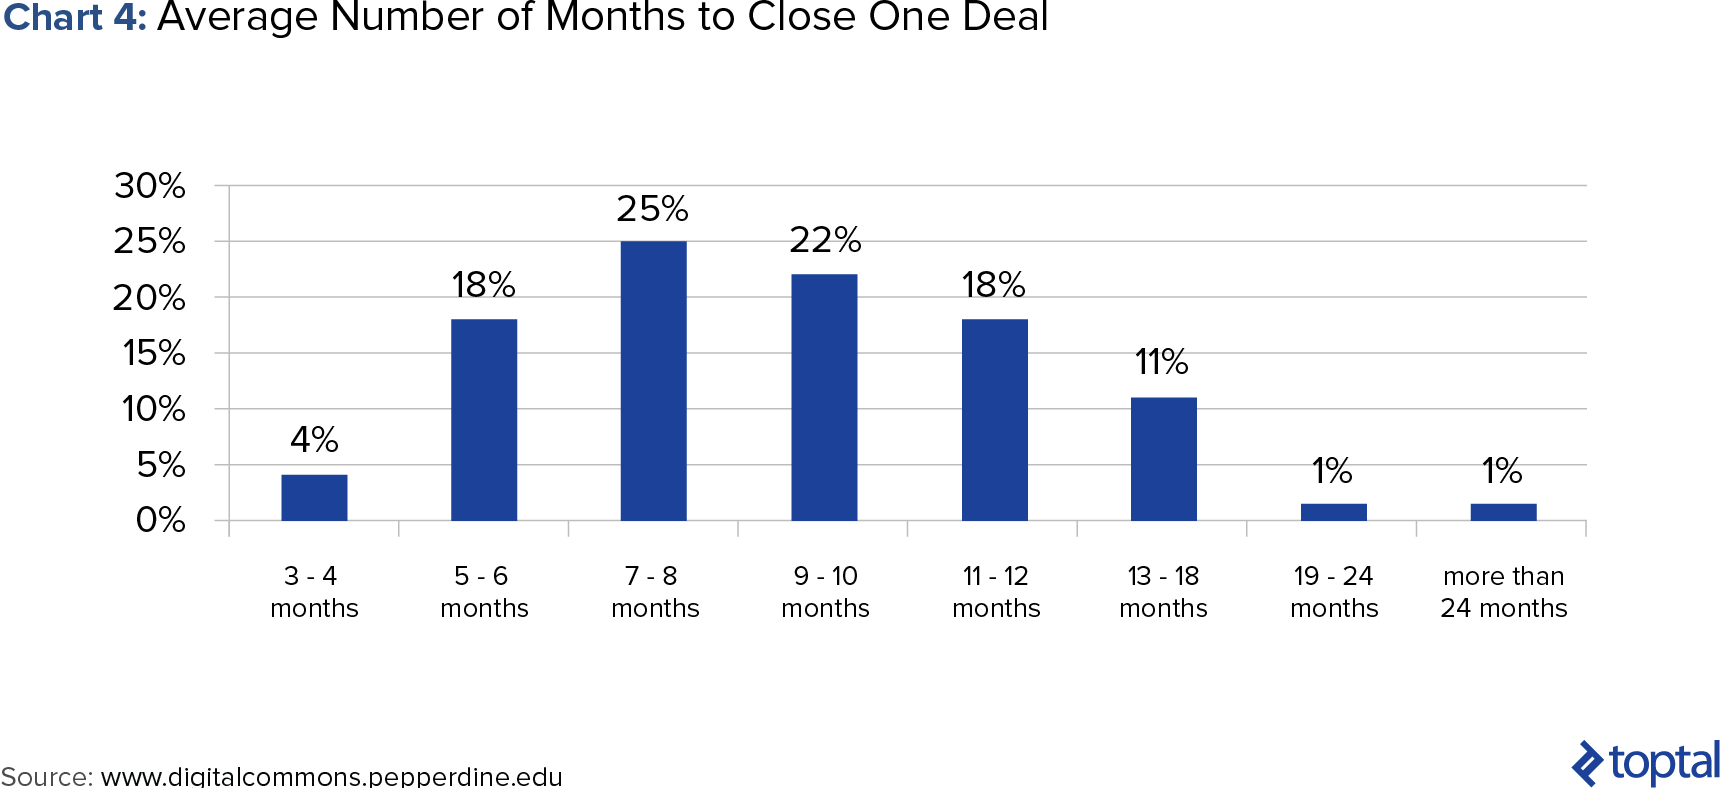 Chart 4: Average Number of Months to Close One Deal